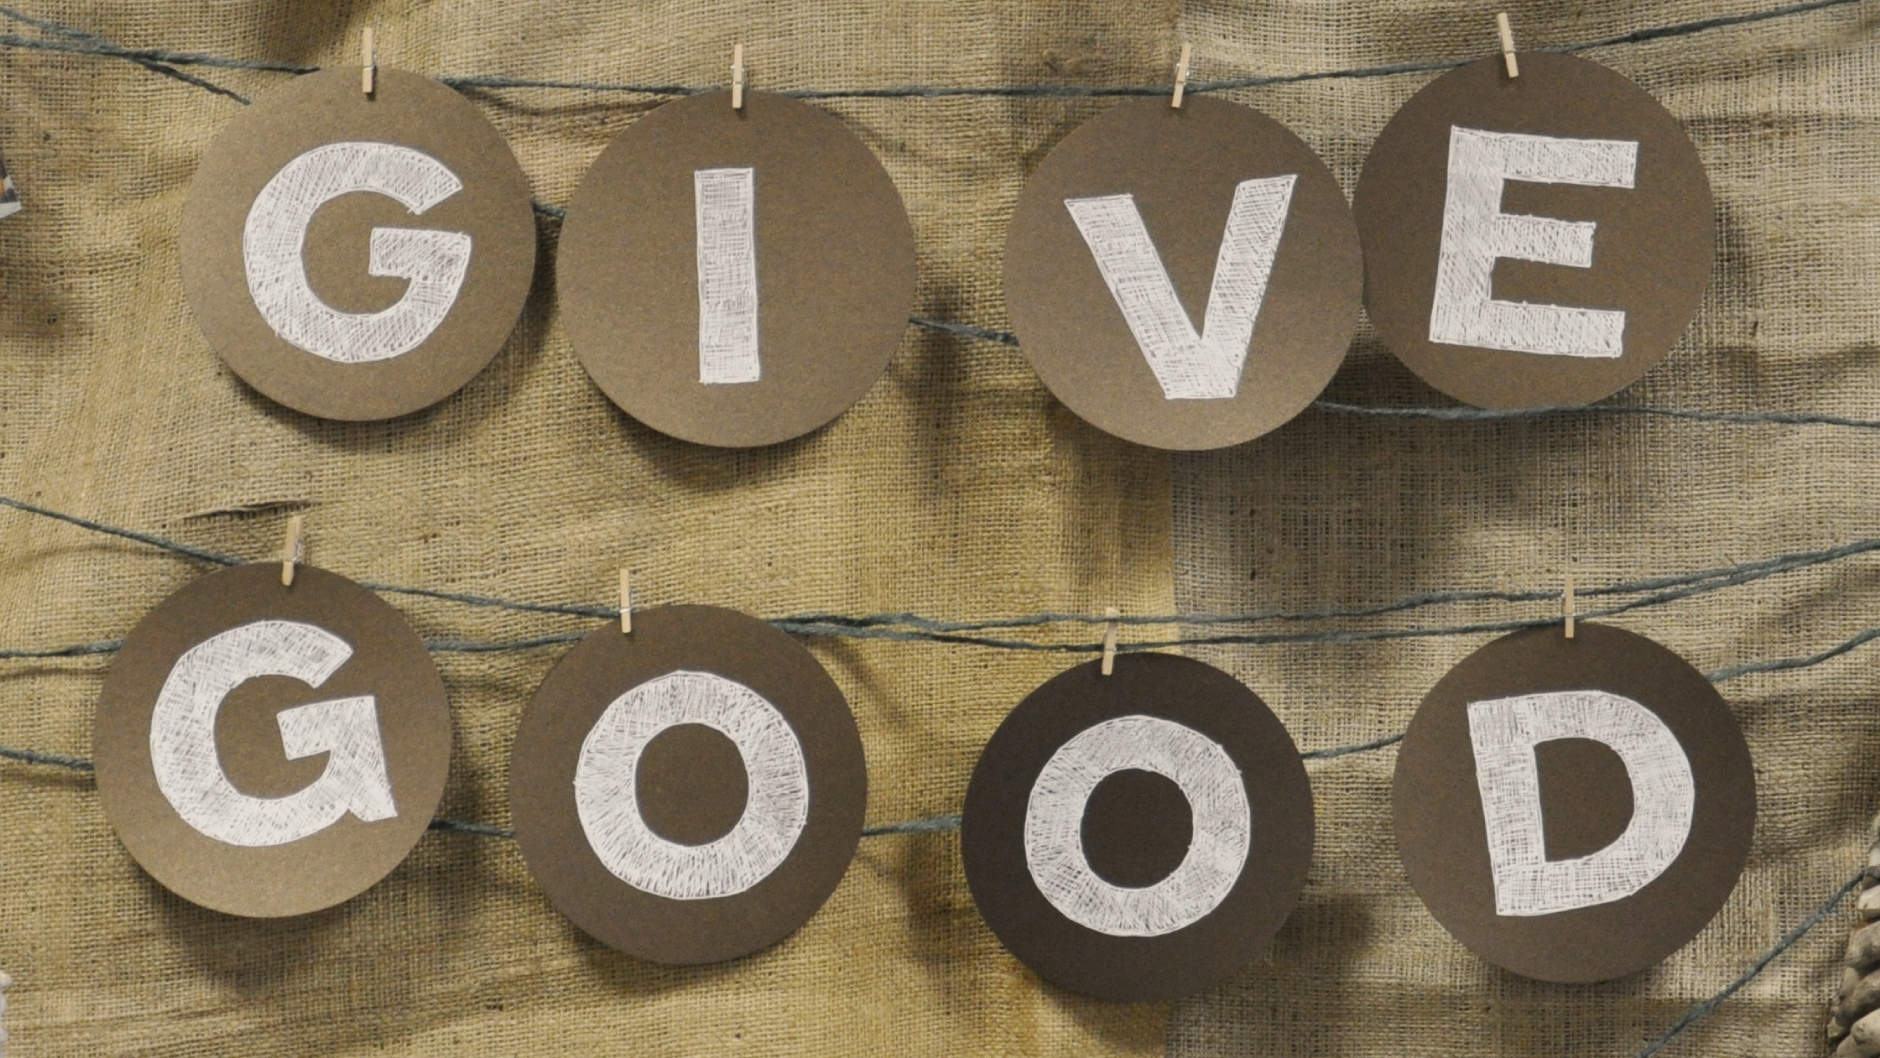 Coexist's gift guide for doing good